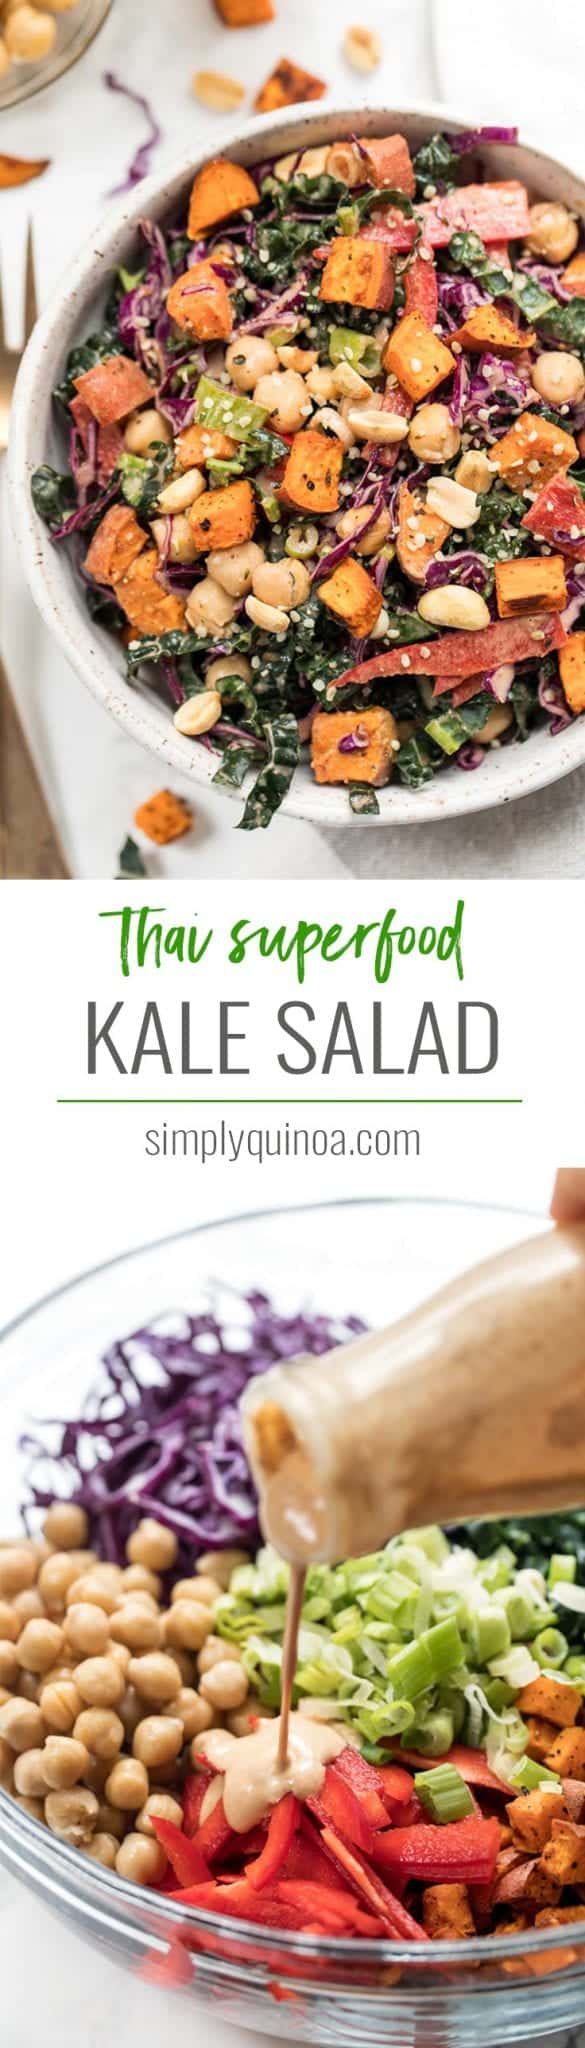 thai superfood kale salad with sweet potatoes and chickpeas